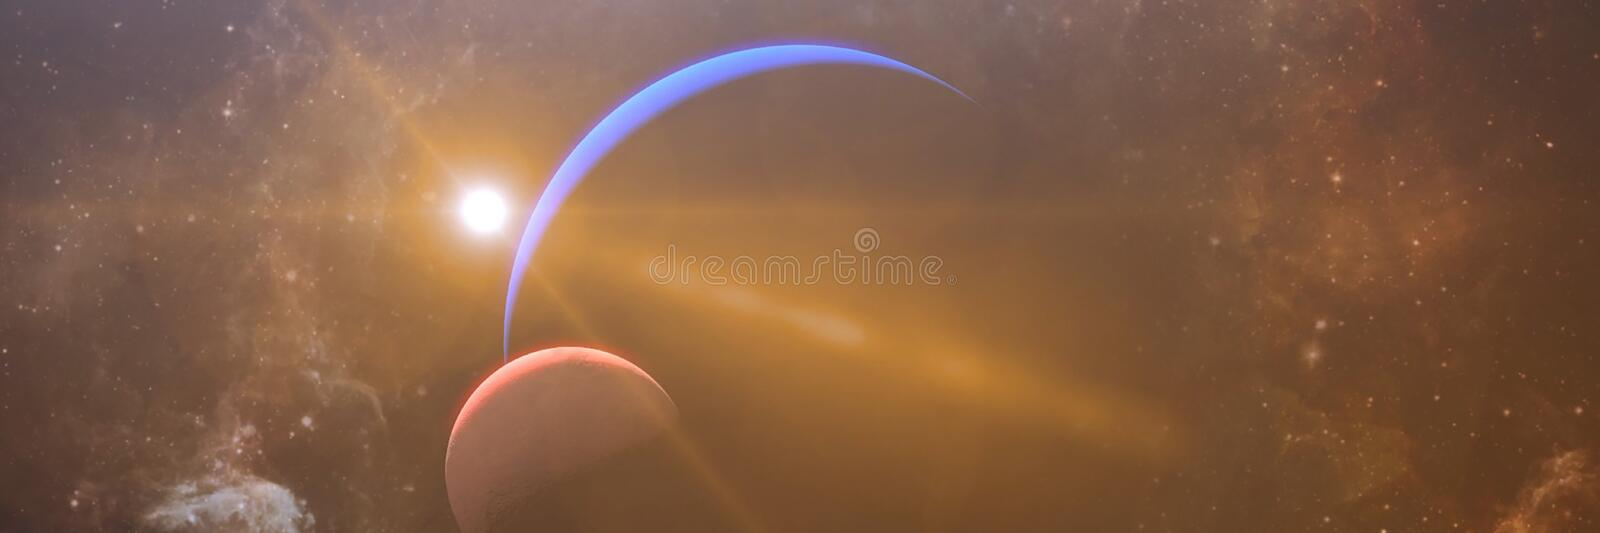 Beautiful Eclipse with meteorite shower. Realistic 3D rendering, High quality  Eclipse planet, galactic, cosmos stock illustration